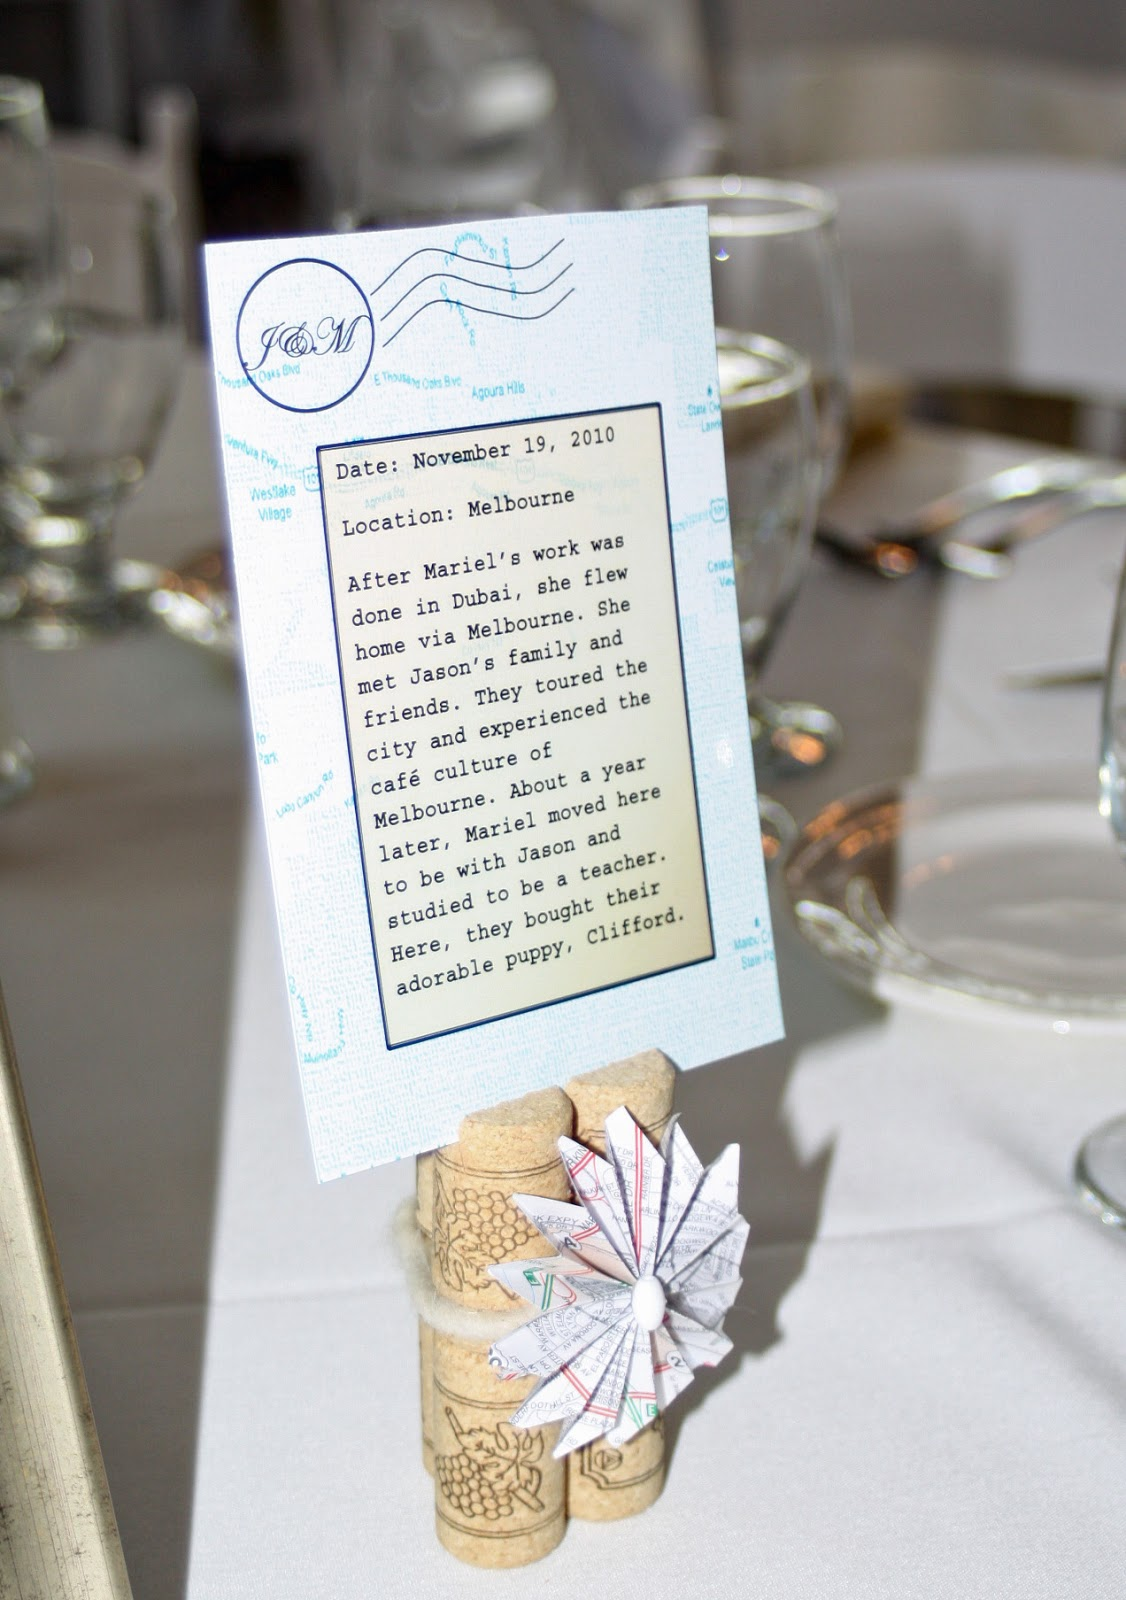 Pastries By Vreeke: Travel Themed Wedding